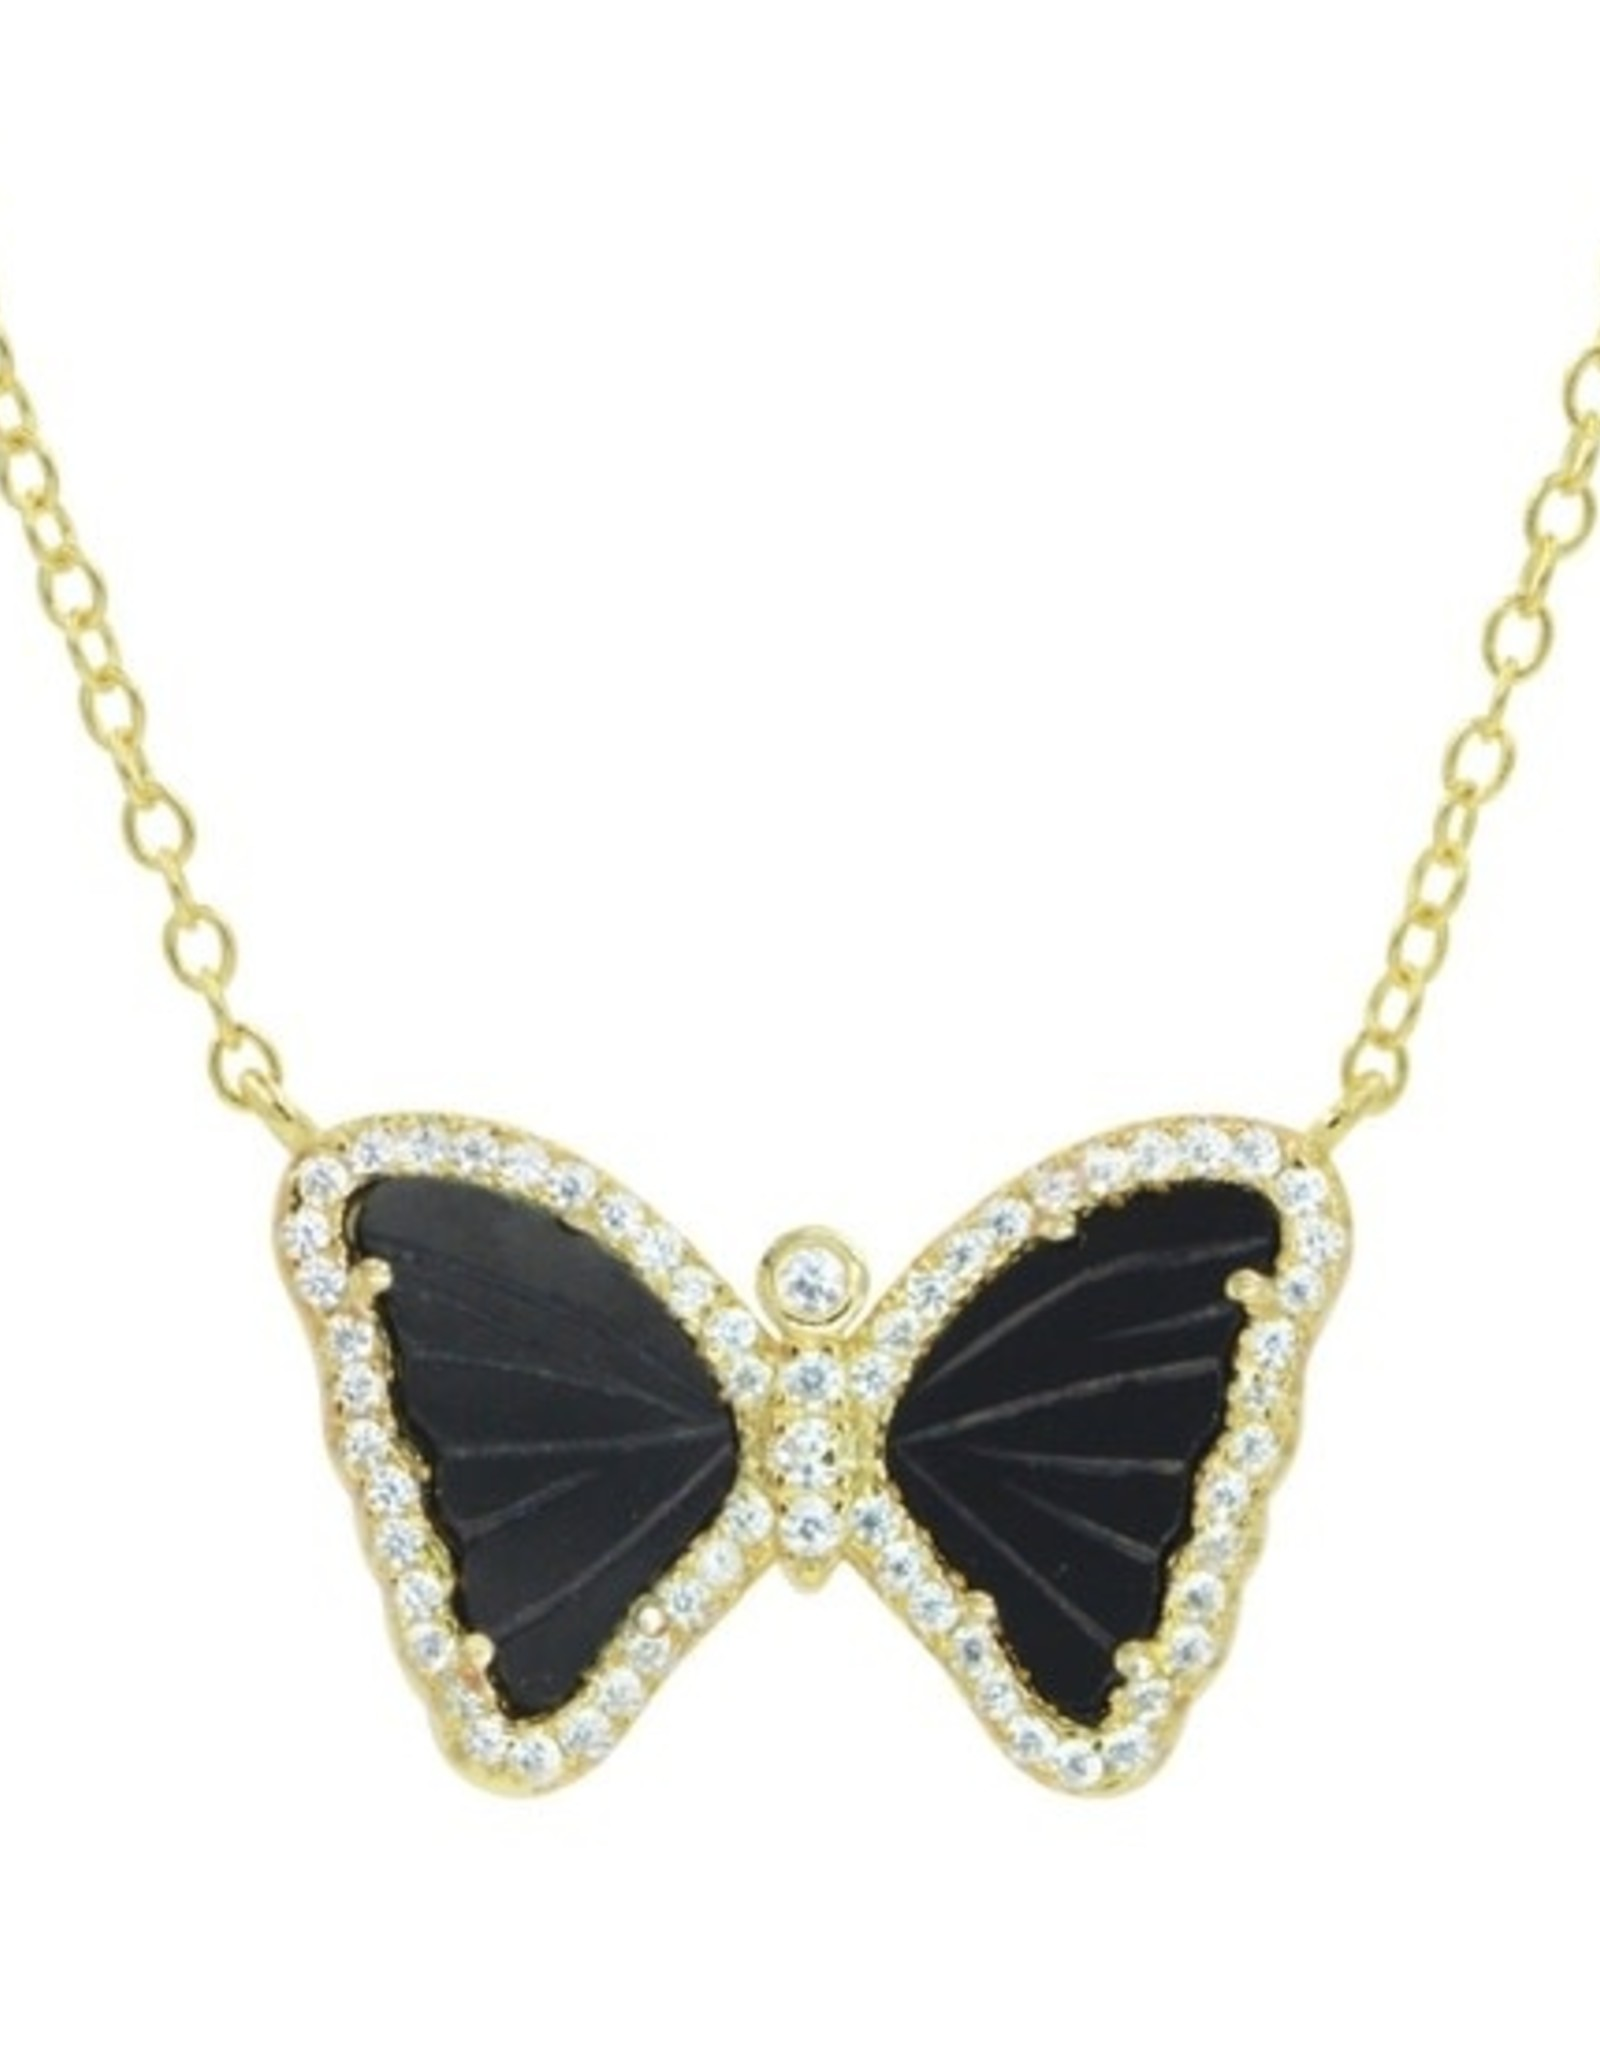 Kamaria Mini Butterfly Necklace in Black Onyx